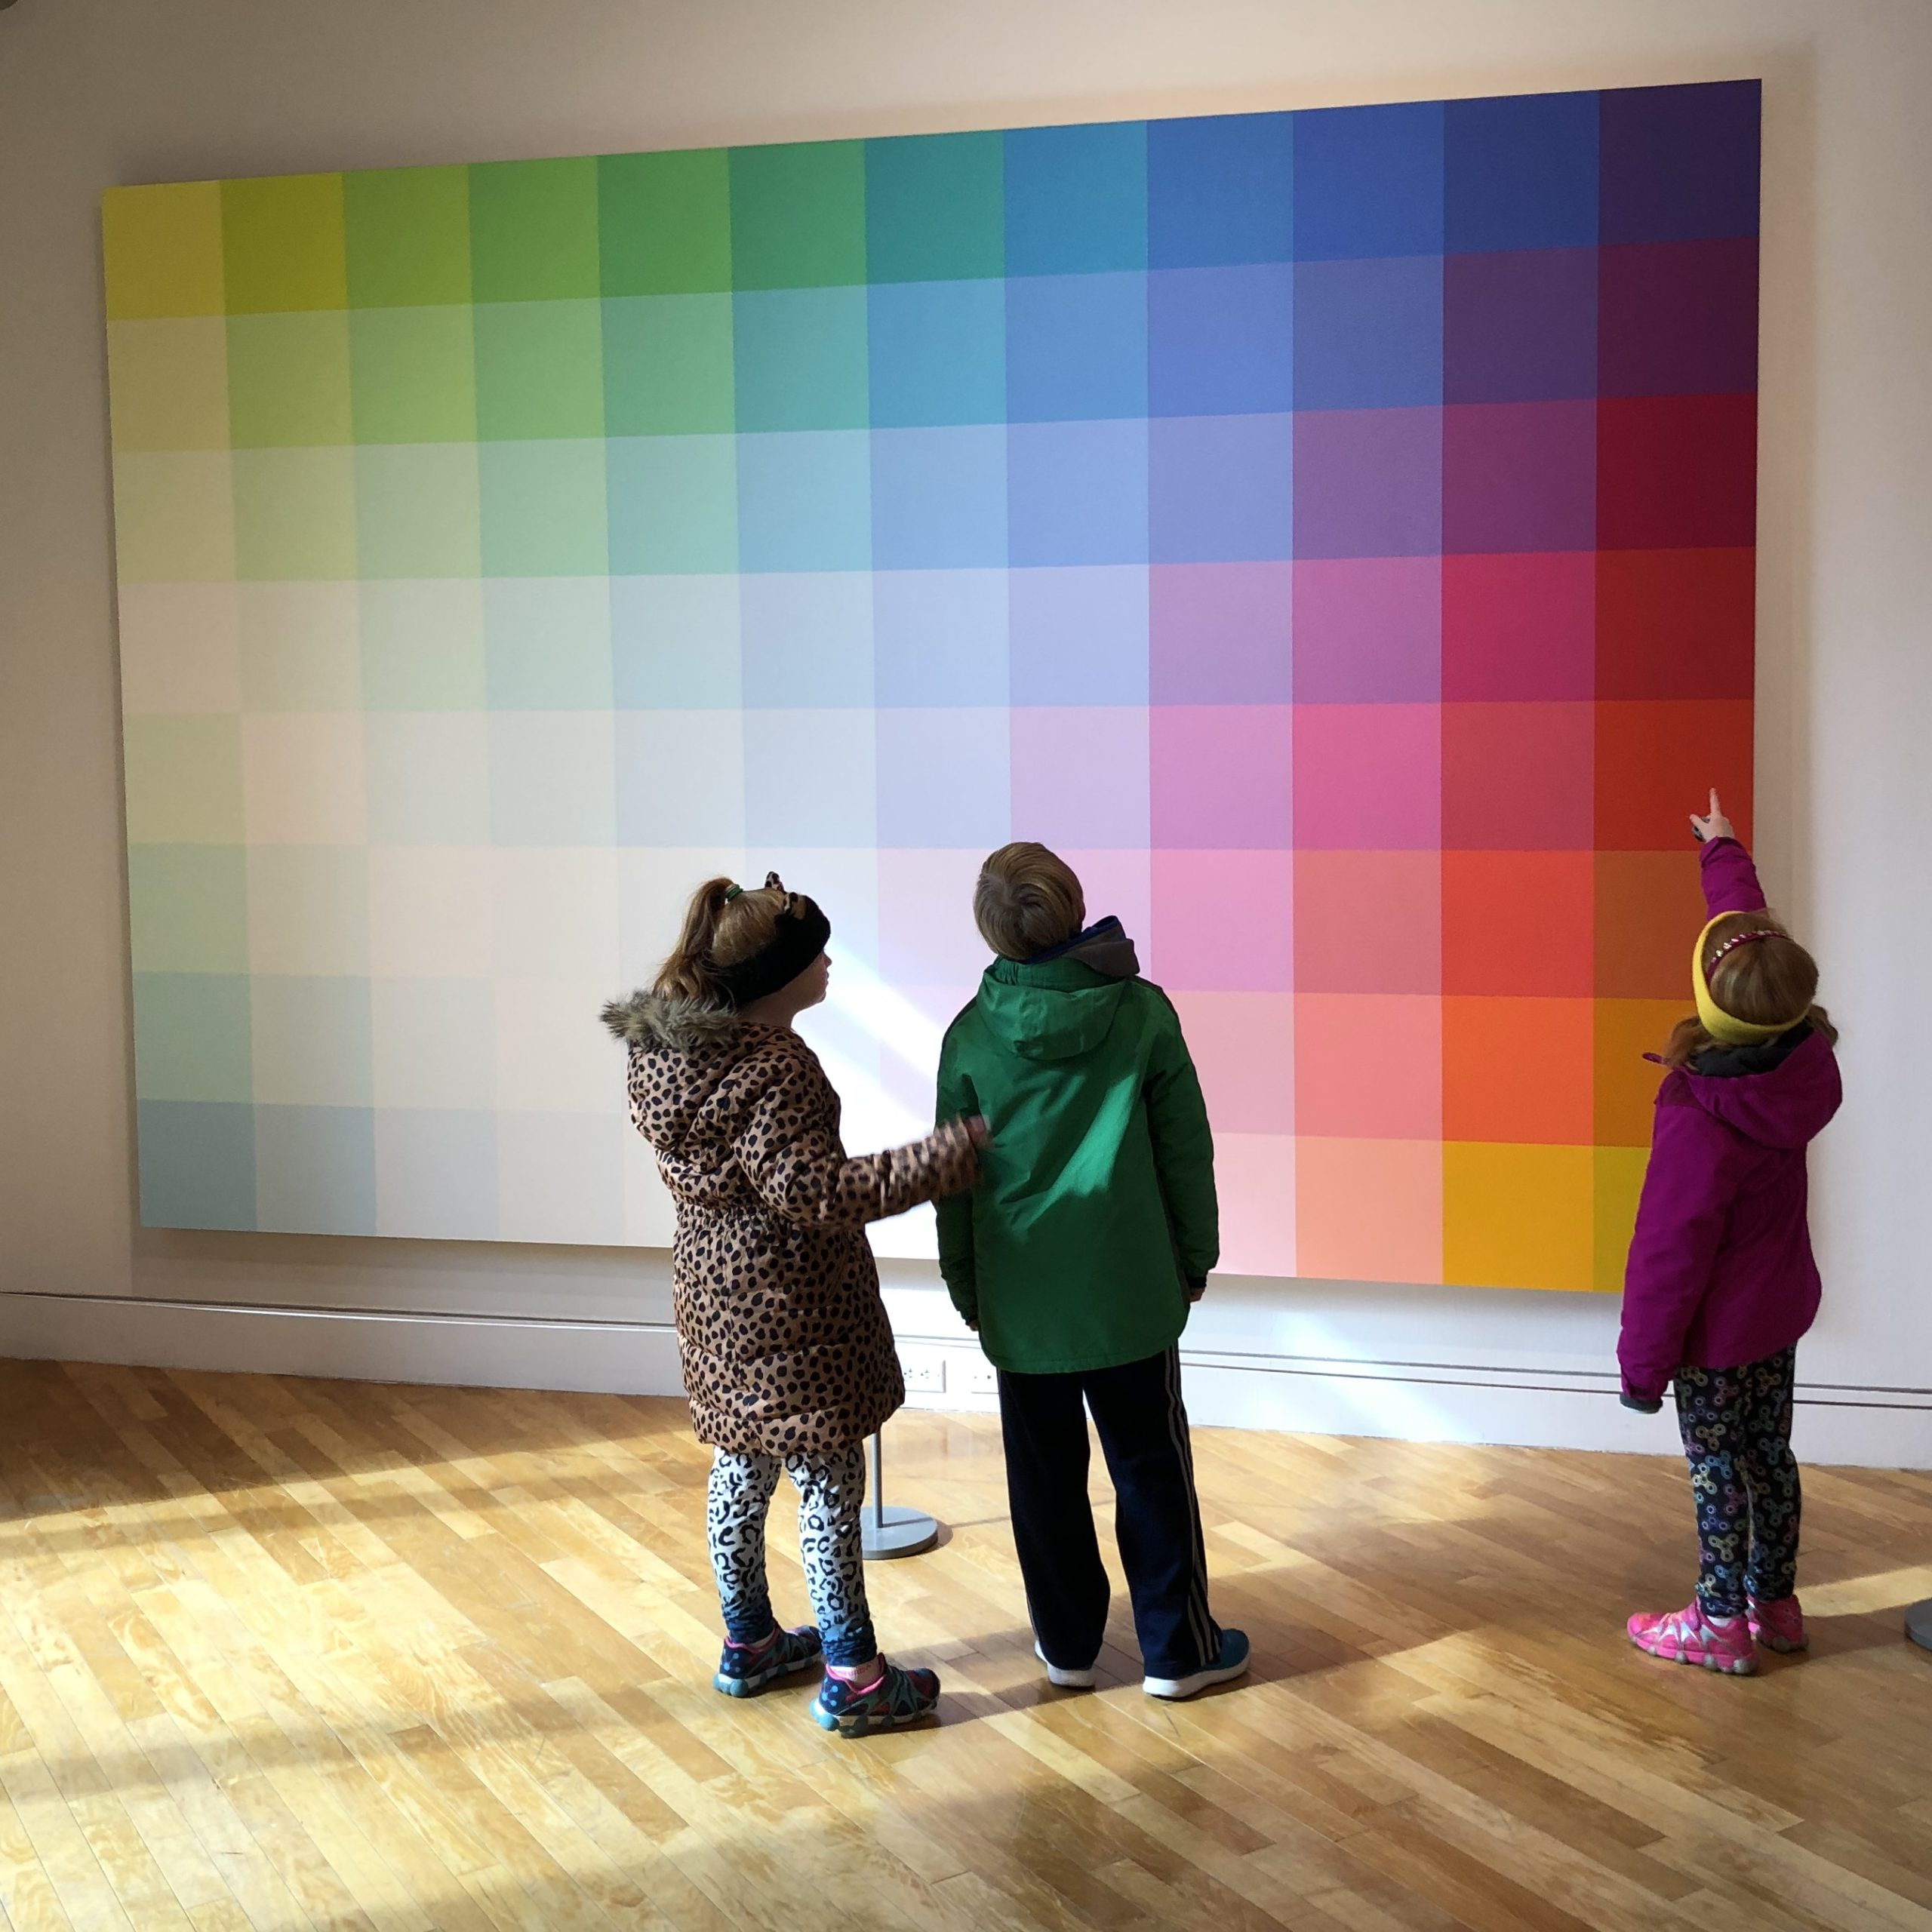 Kids looking at color